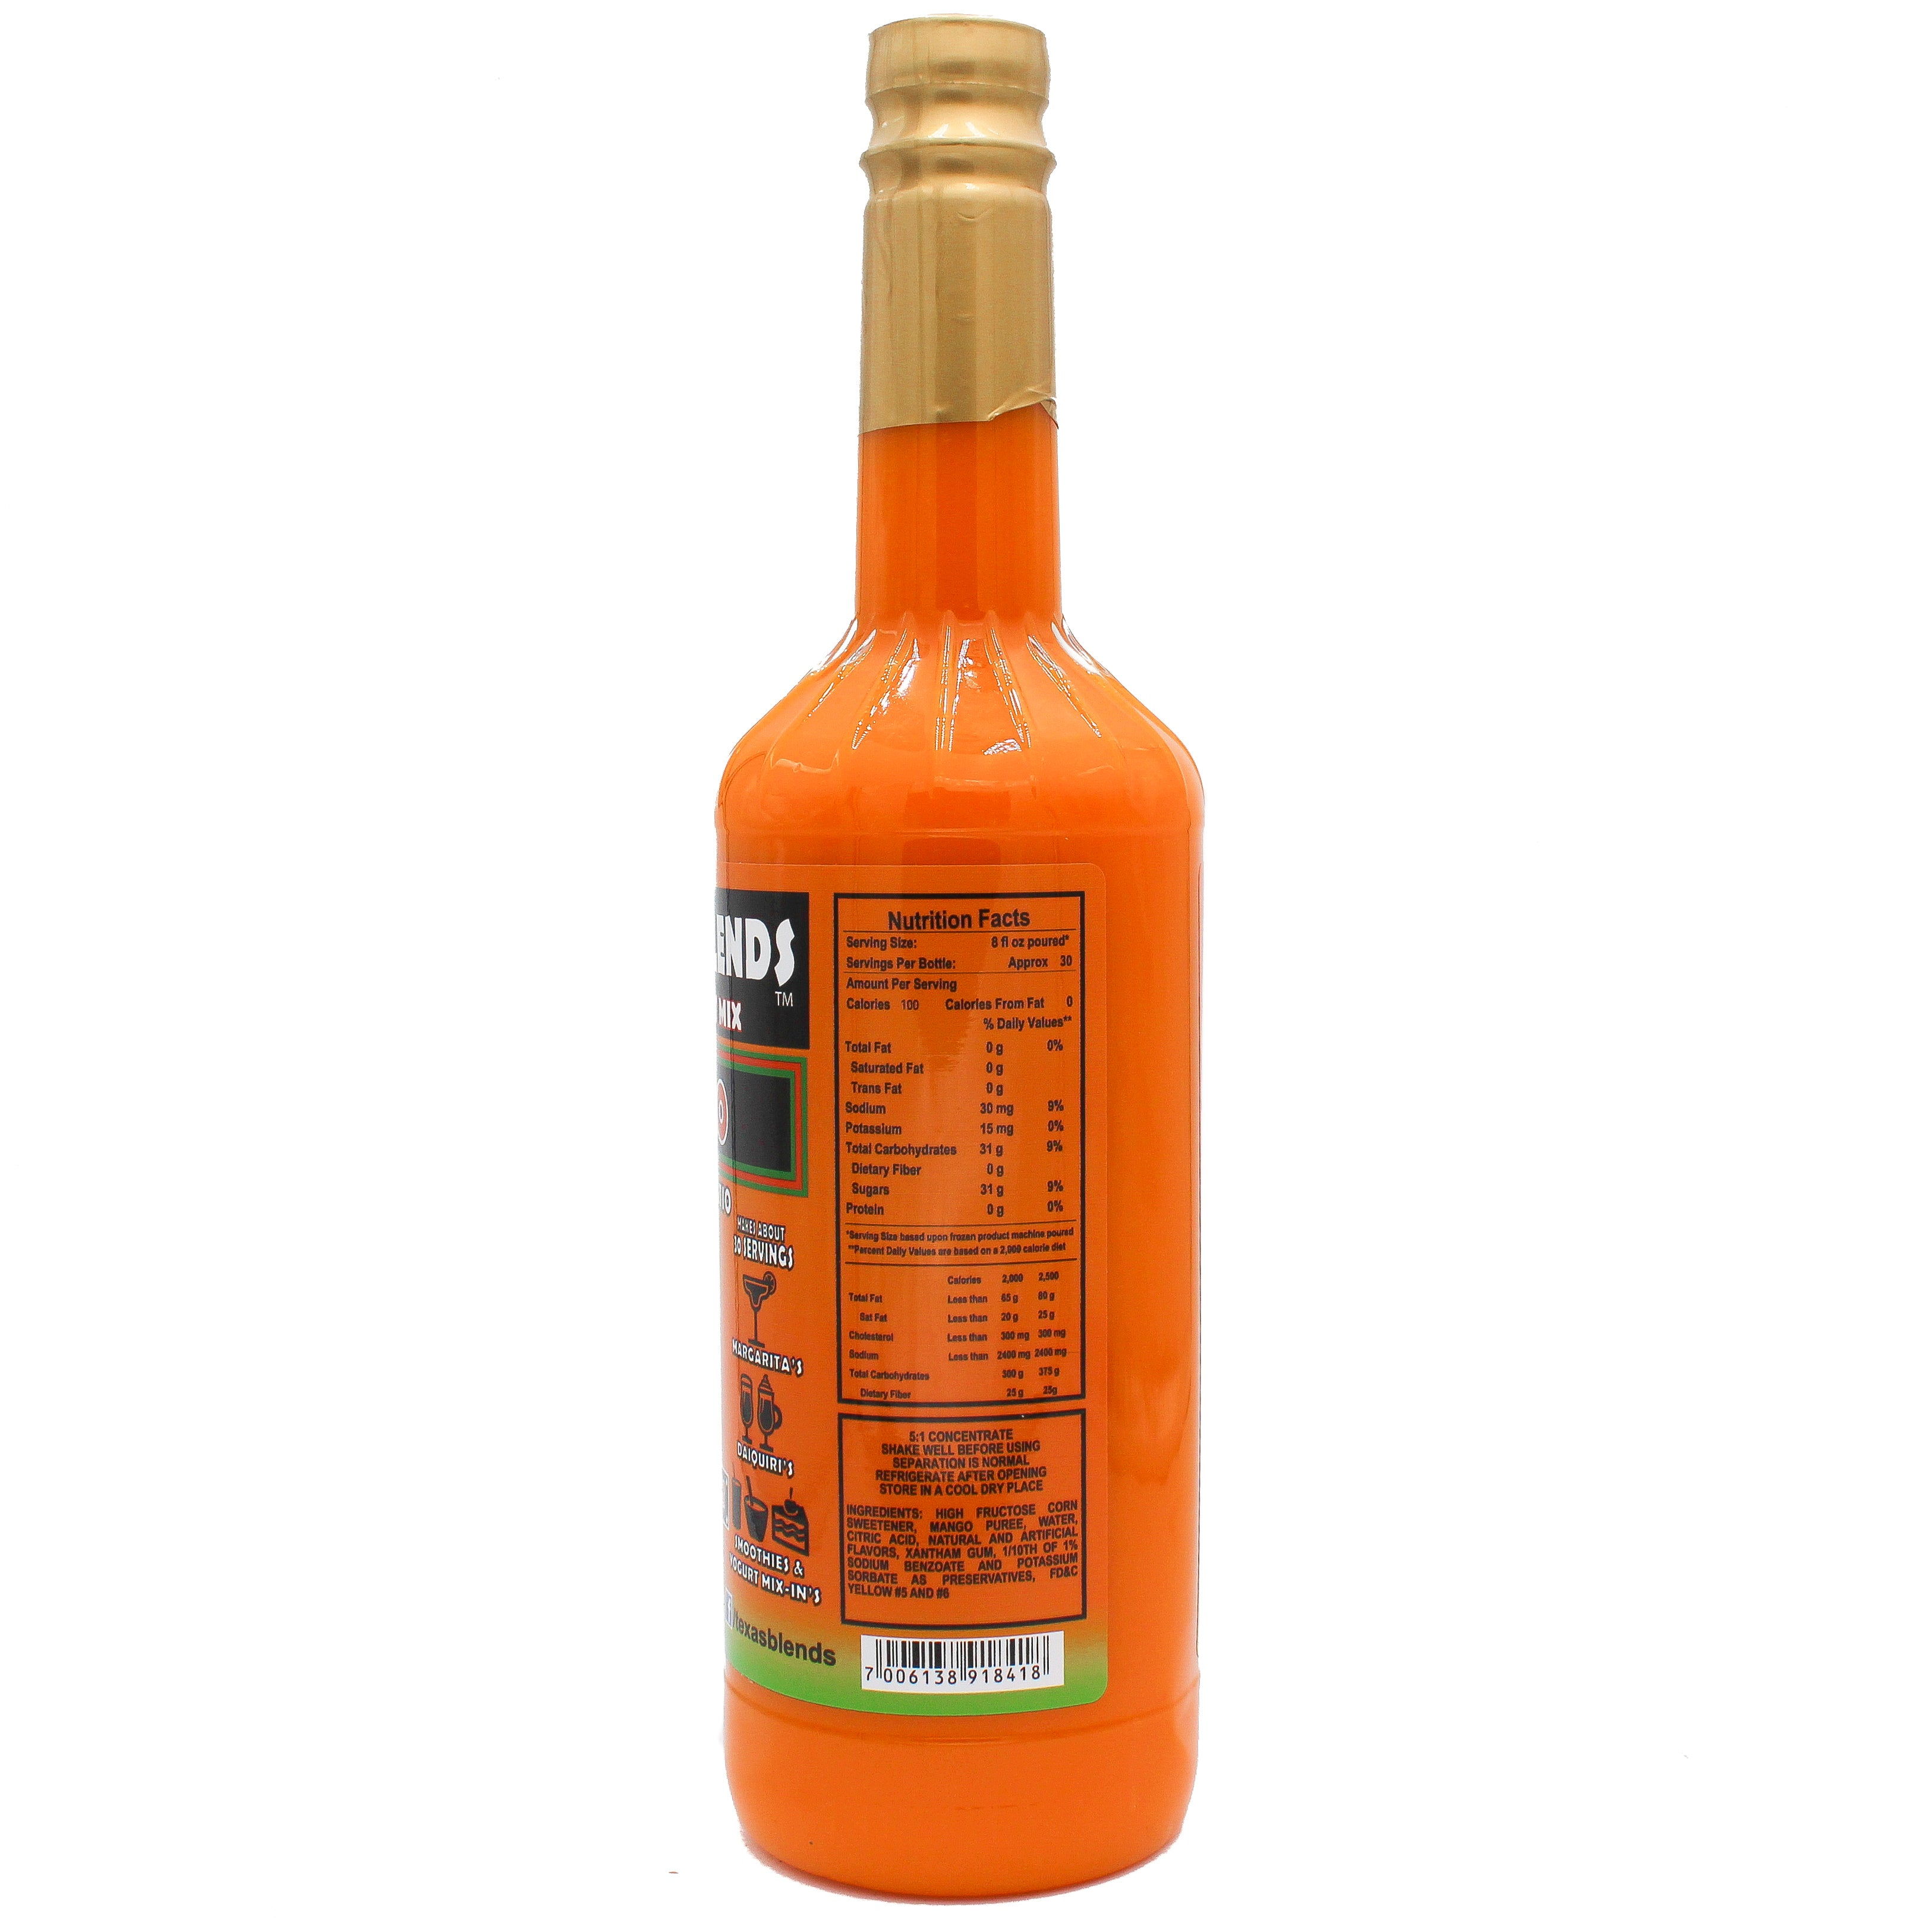 Mango - 1 Liter (33.8 Oz) - Texas Blends